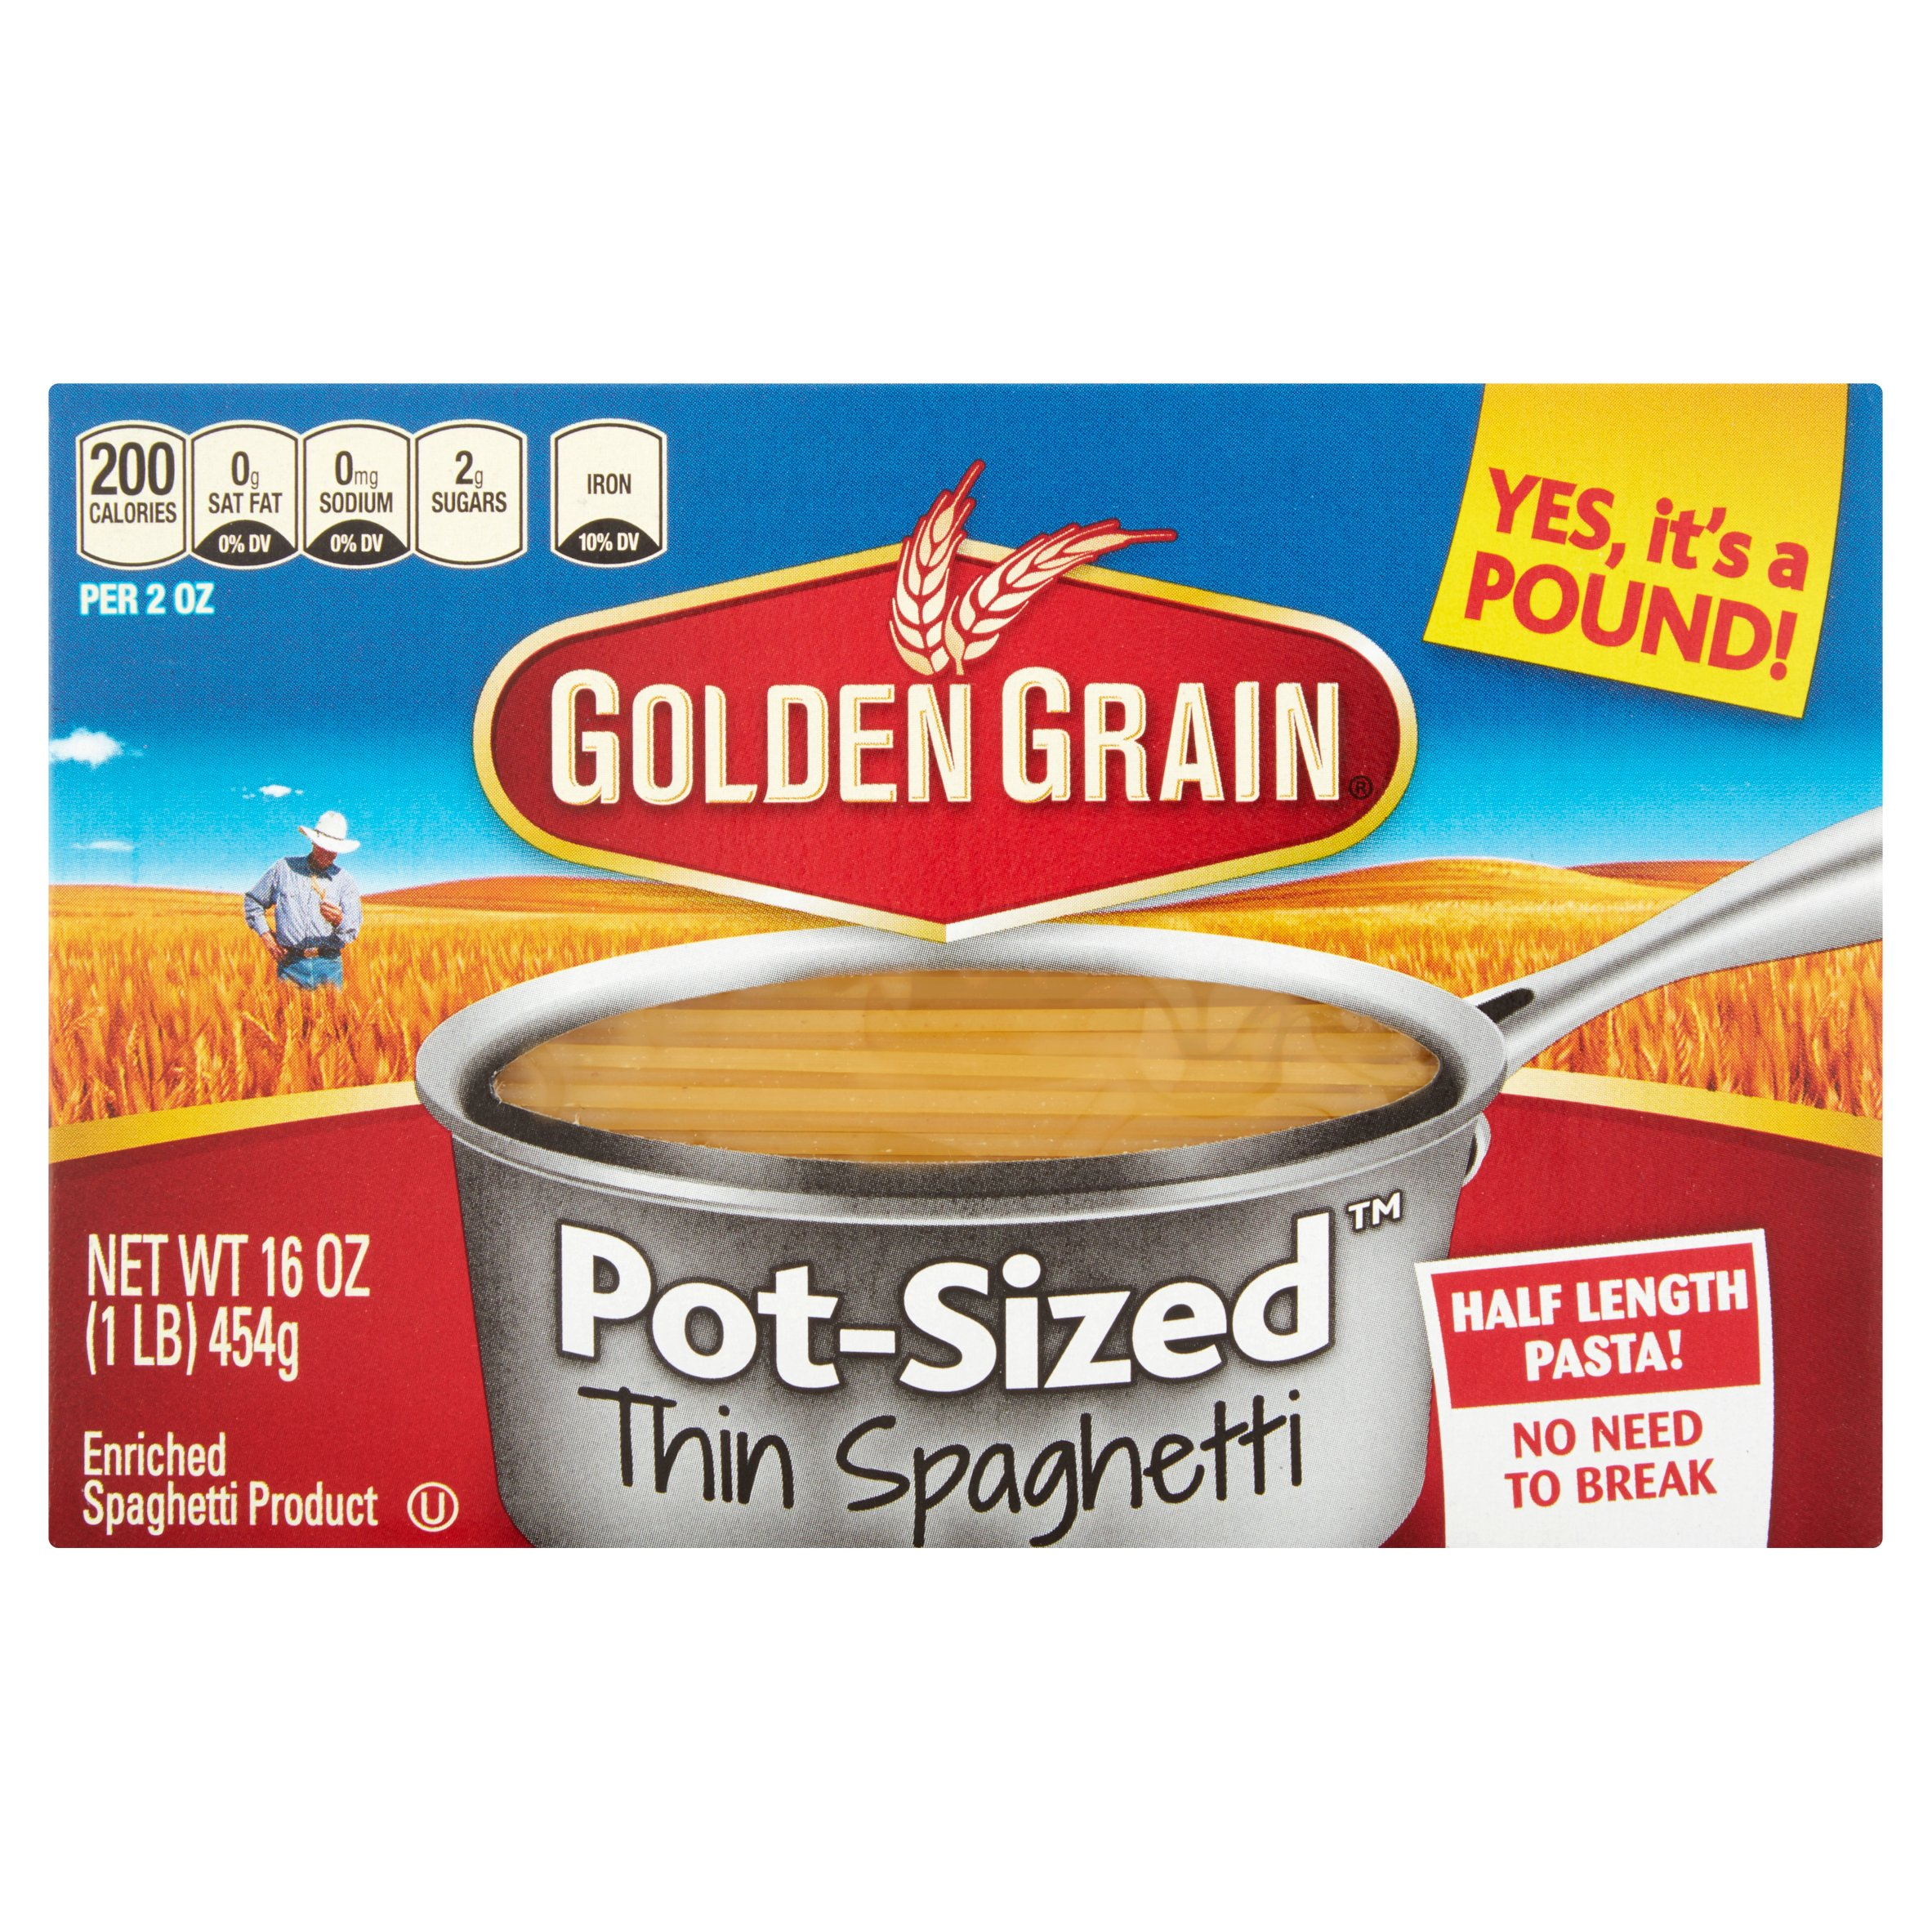 Golden Grain Pot-Sized Thin Spaghetti Pasta, 16 oz